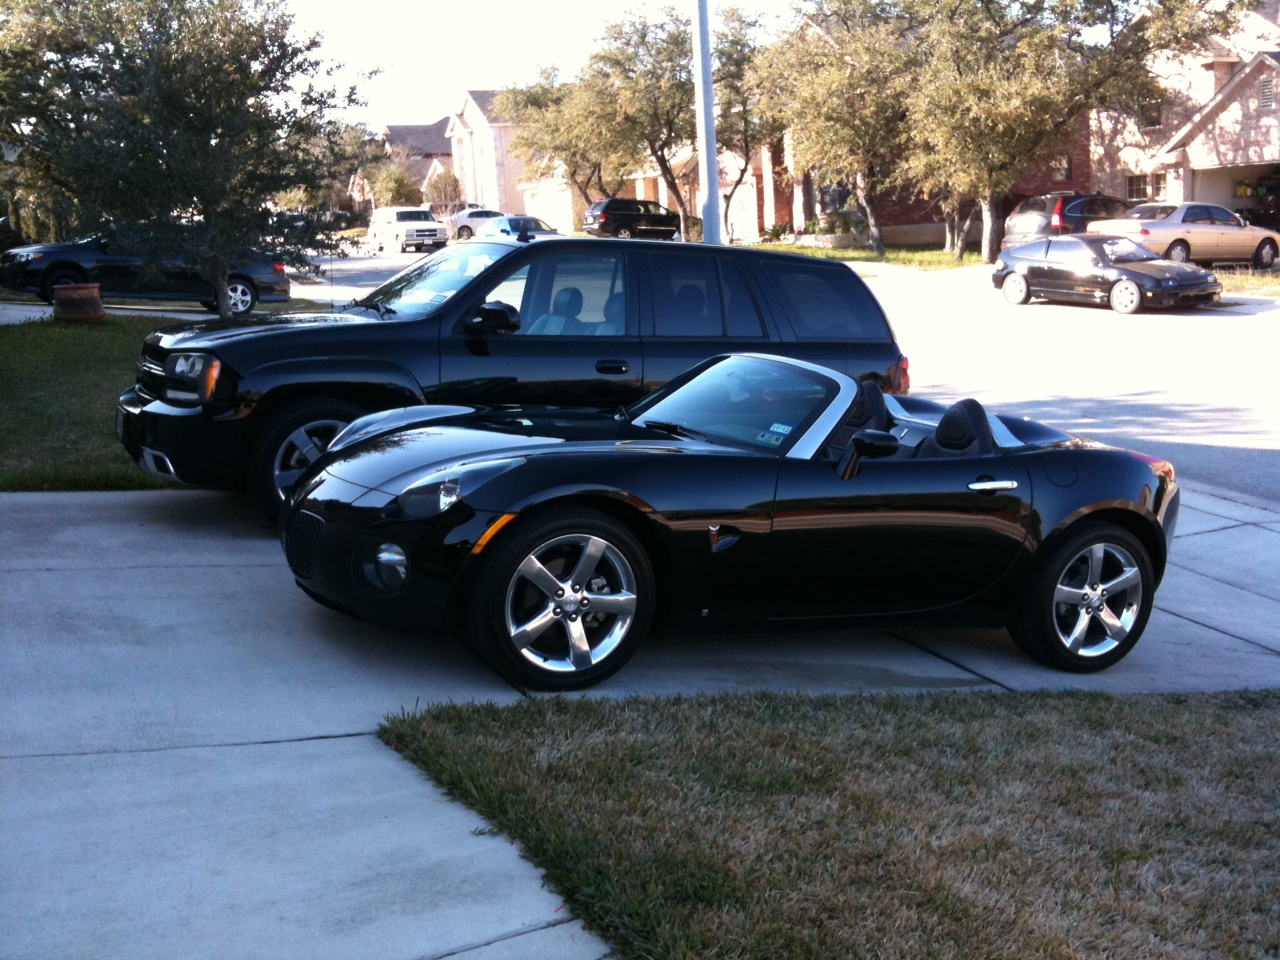 2007 Black Pontiac Solstice GXP picture, mods, upgrades